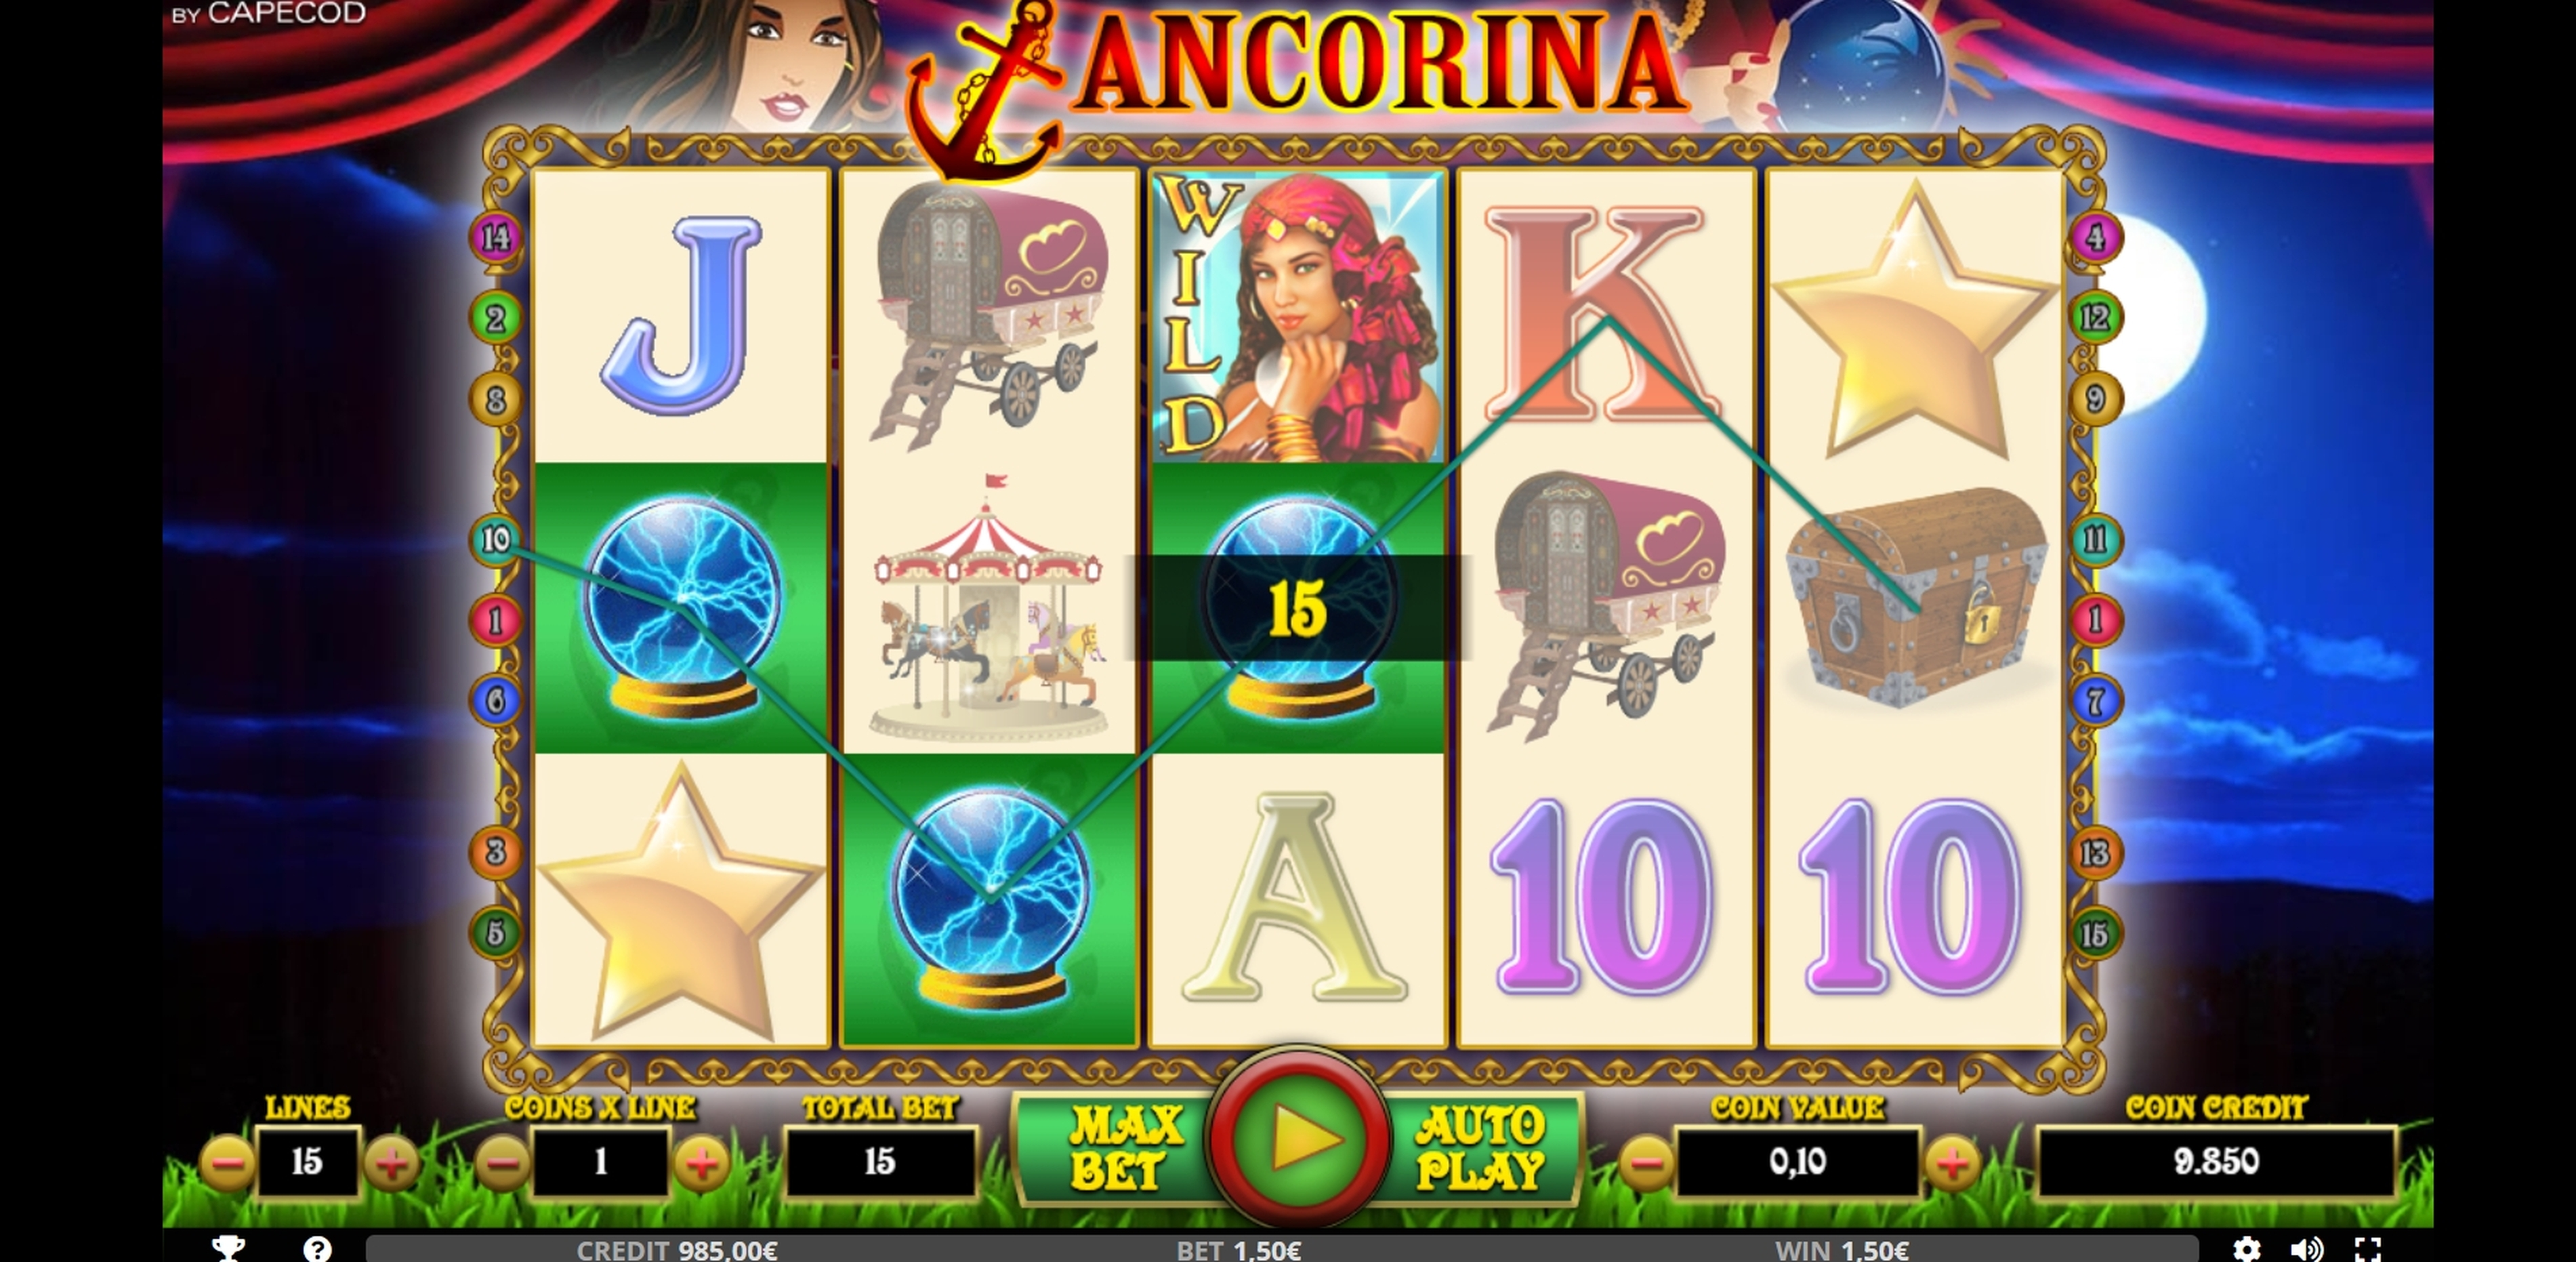 Win Money in ANCORINA Free Slot Game by Capecod Gaming